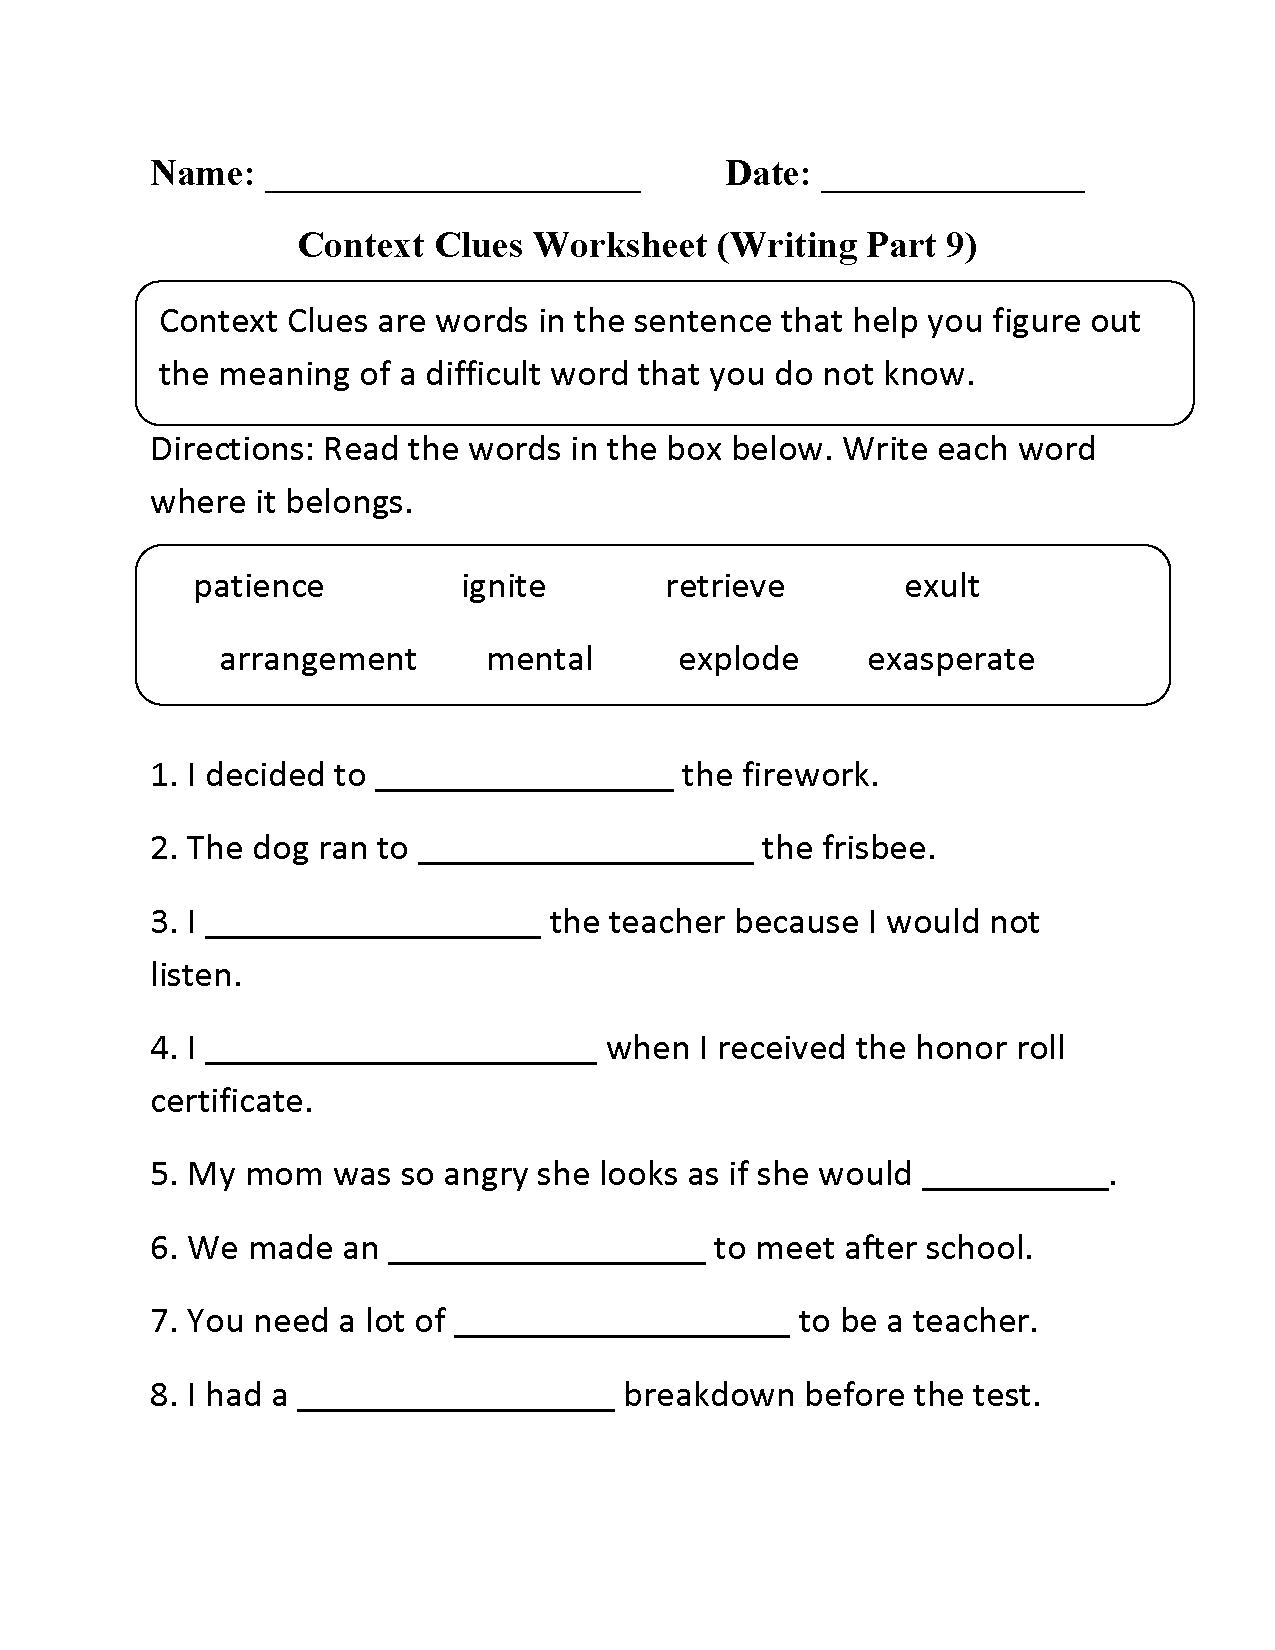 Context Clues Worksheet Writing Part 9 Intermediate | Context Clues | Free Printable Context Clues Worksheets